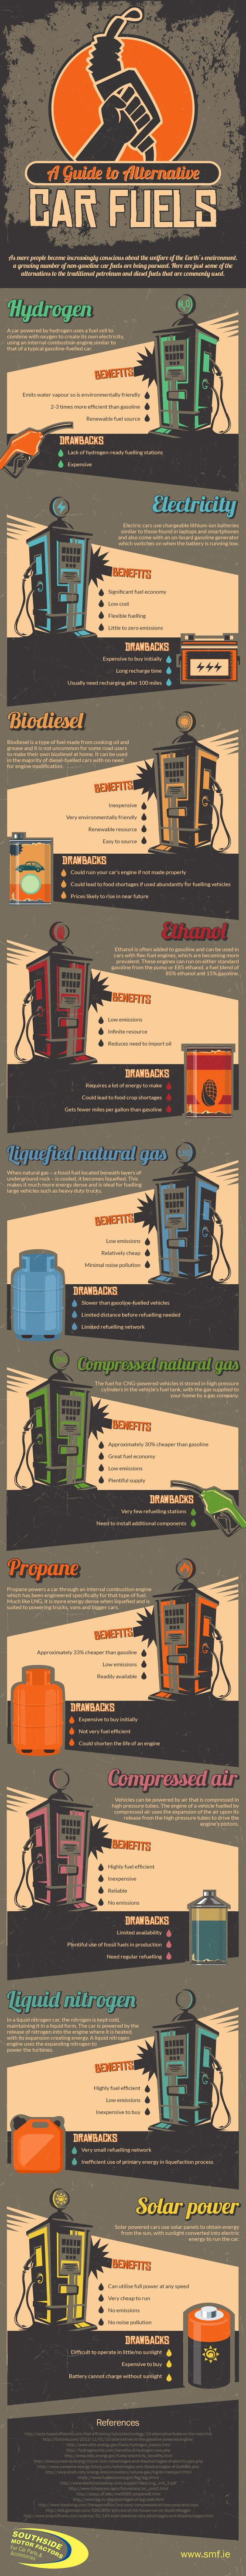 A Guide to Alternative Car Fuels - Infographic